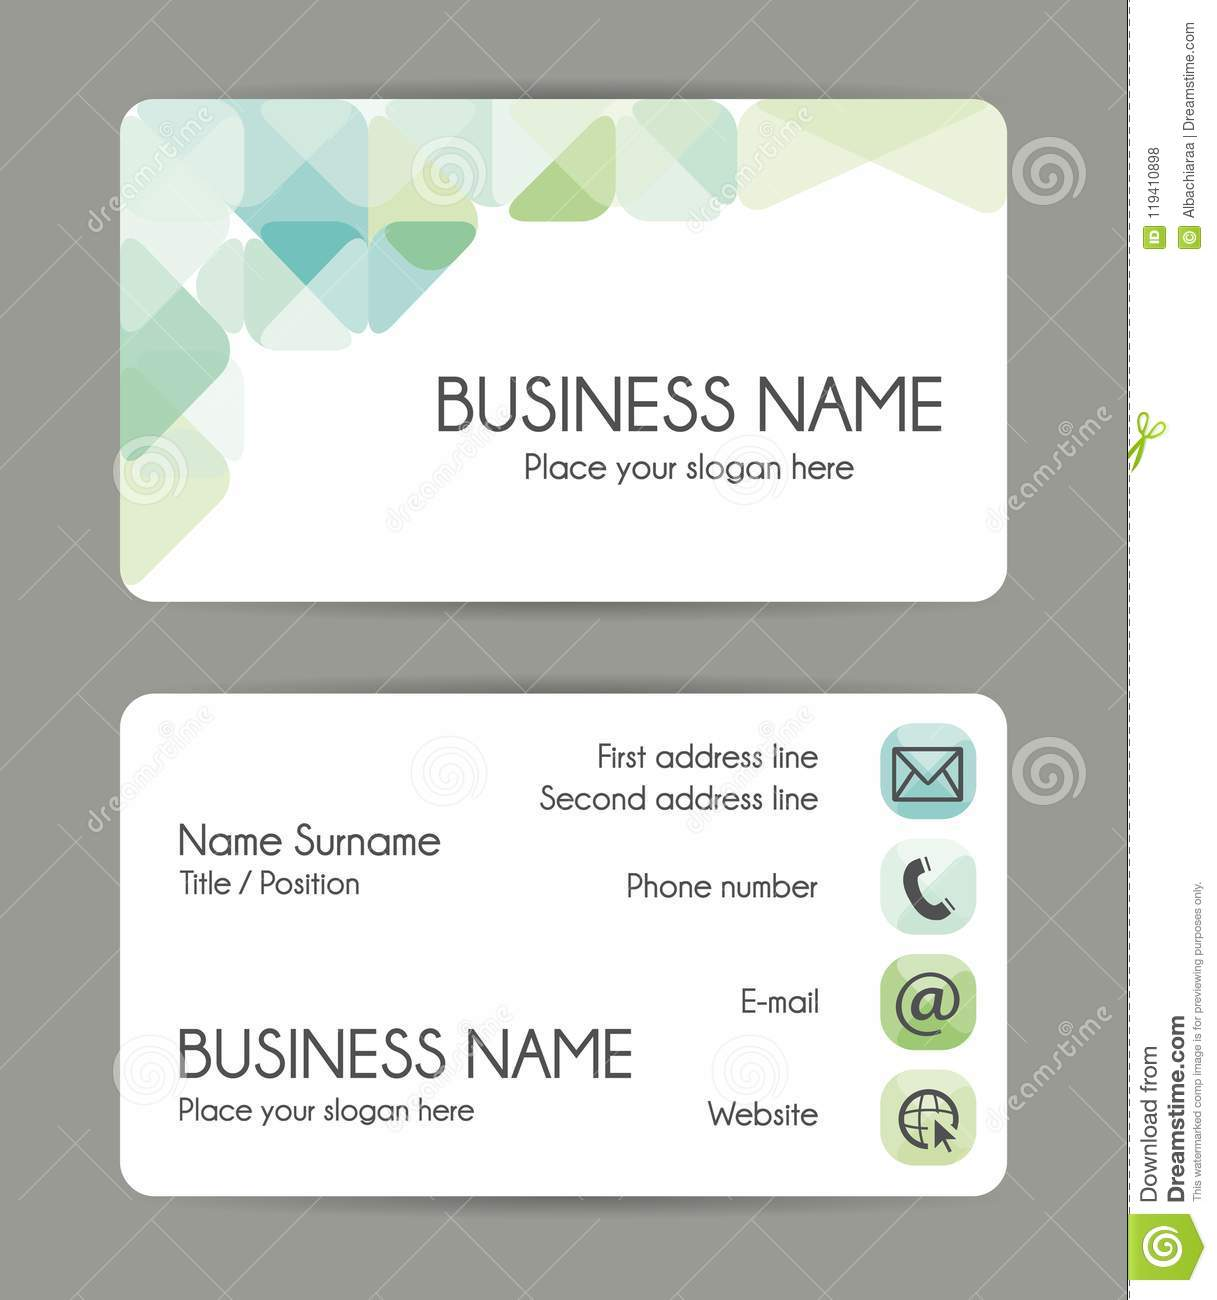 Rounded corner business card template green tones front and back download rounded corner business card template green tones front and back stock vector flashek Choice Image